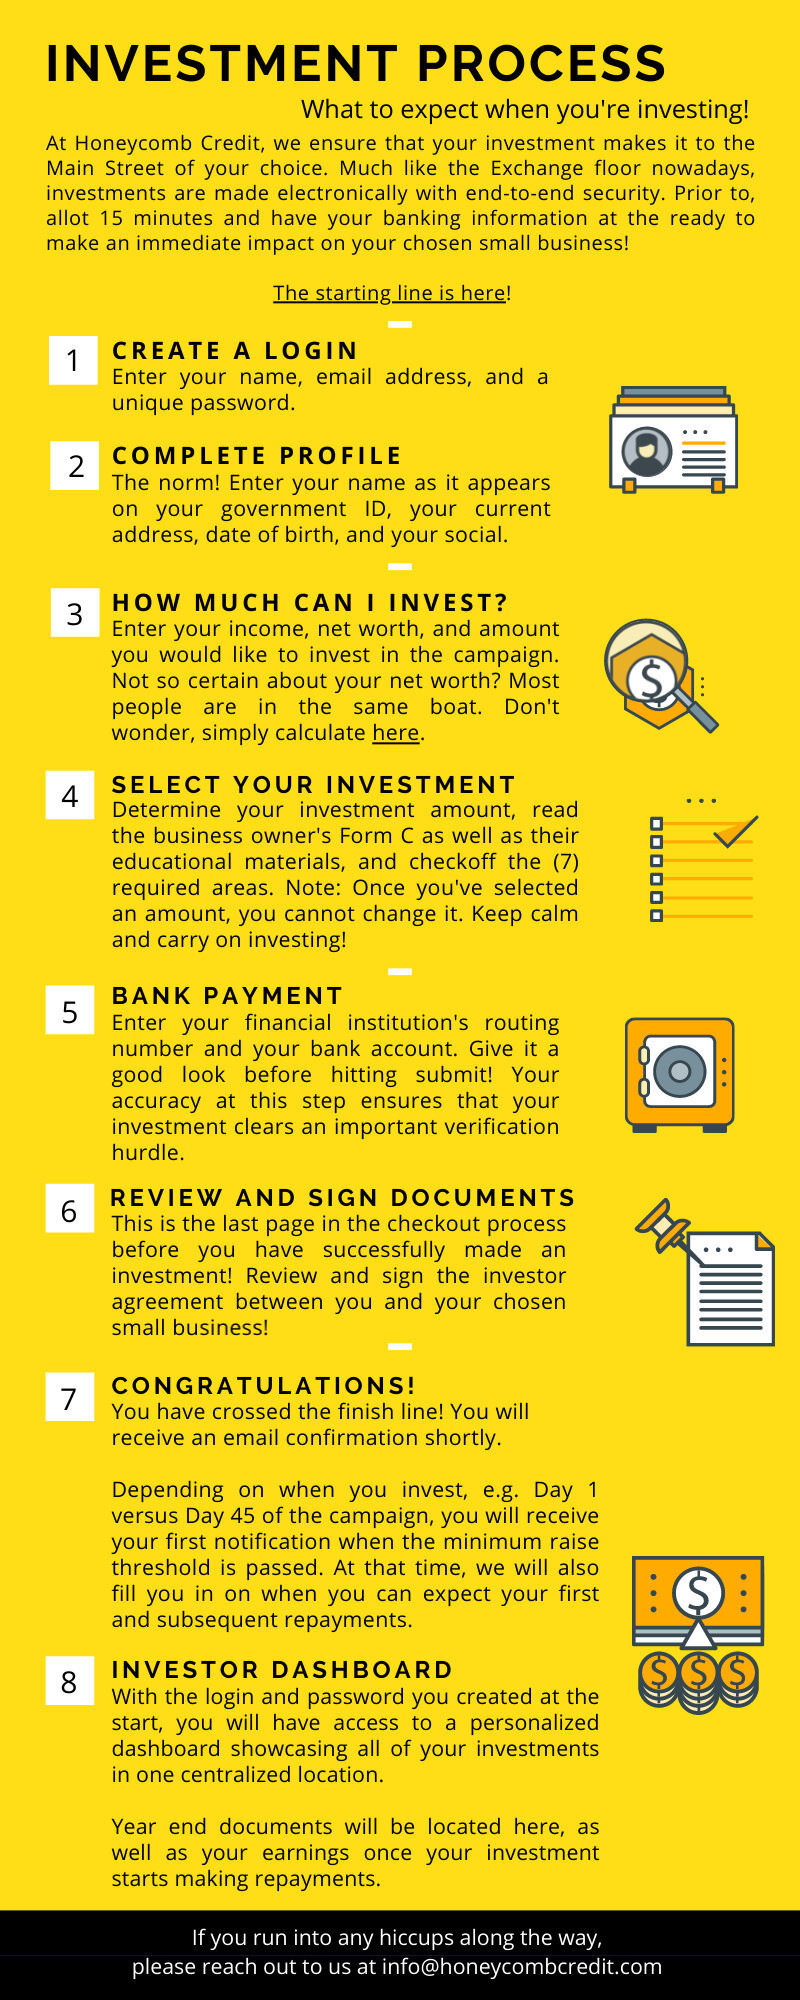 Infographic explains the Honeycomb Credit customer investment process, including a net worth calculator